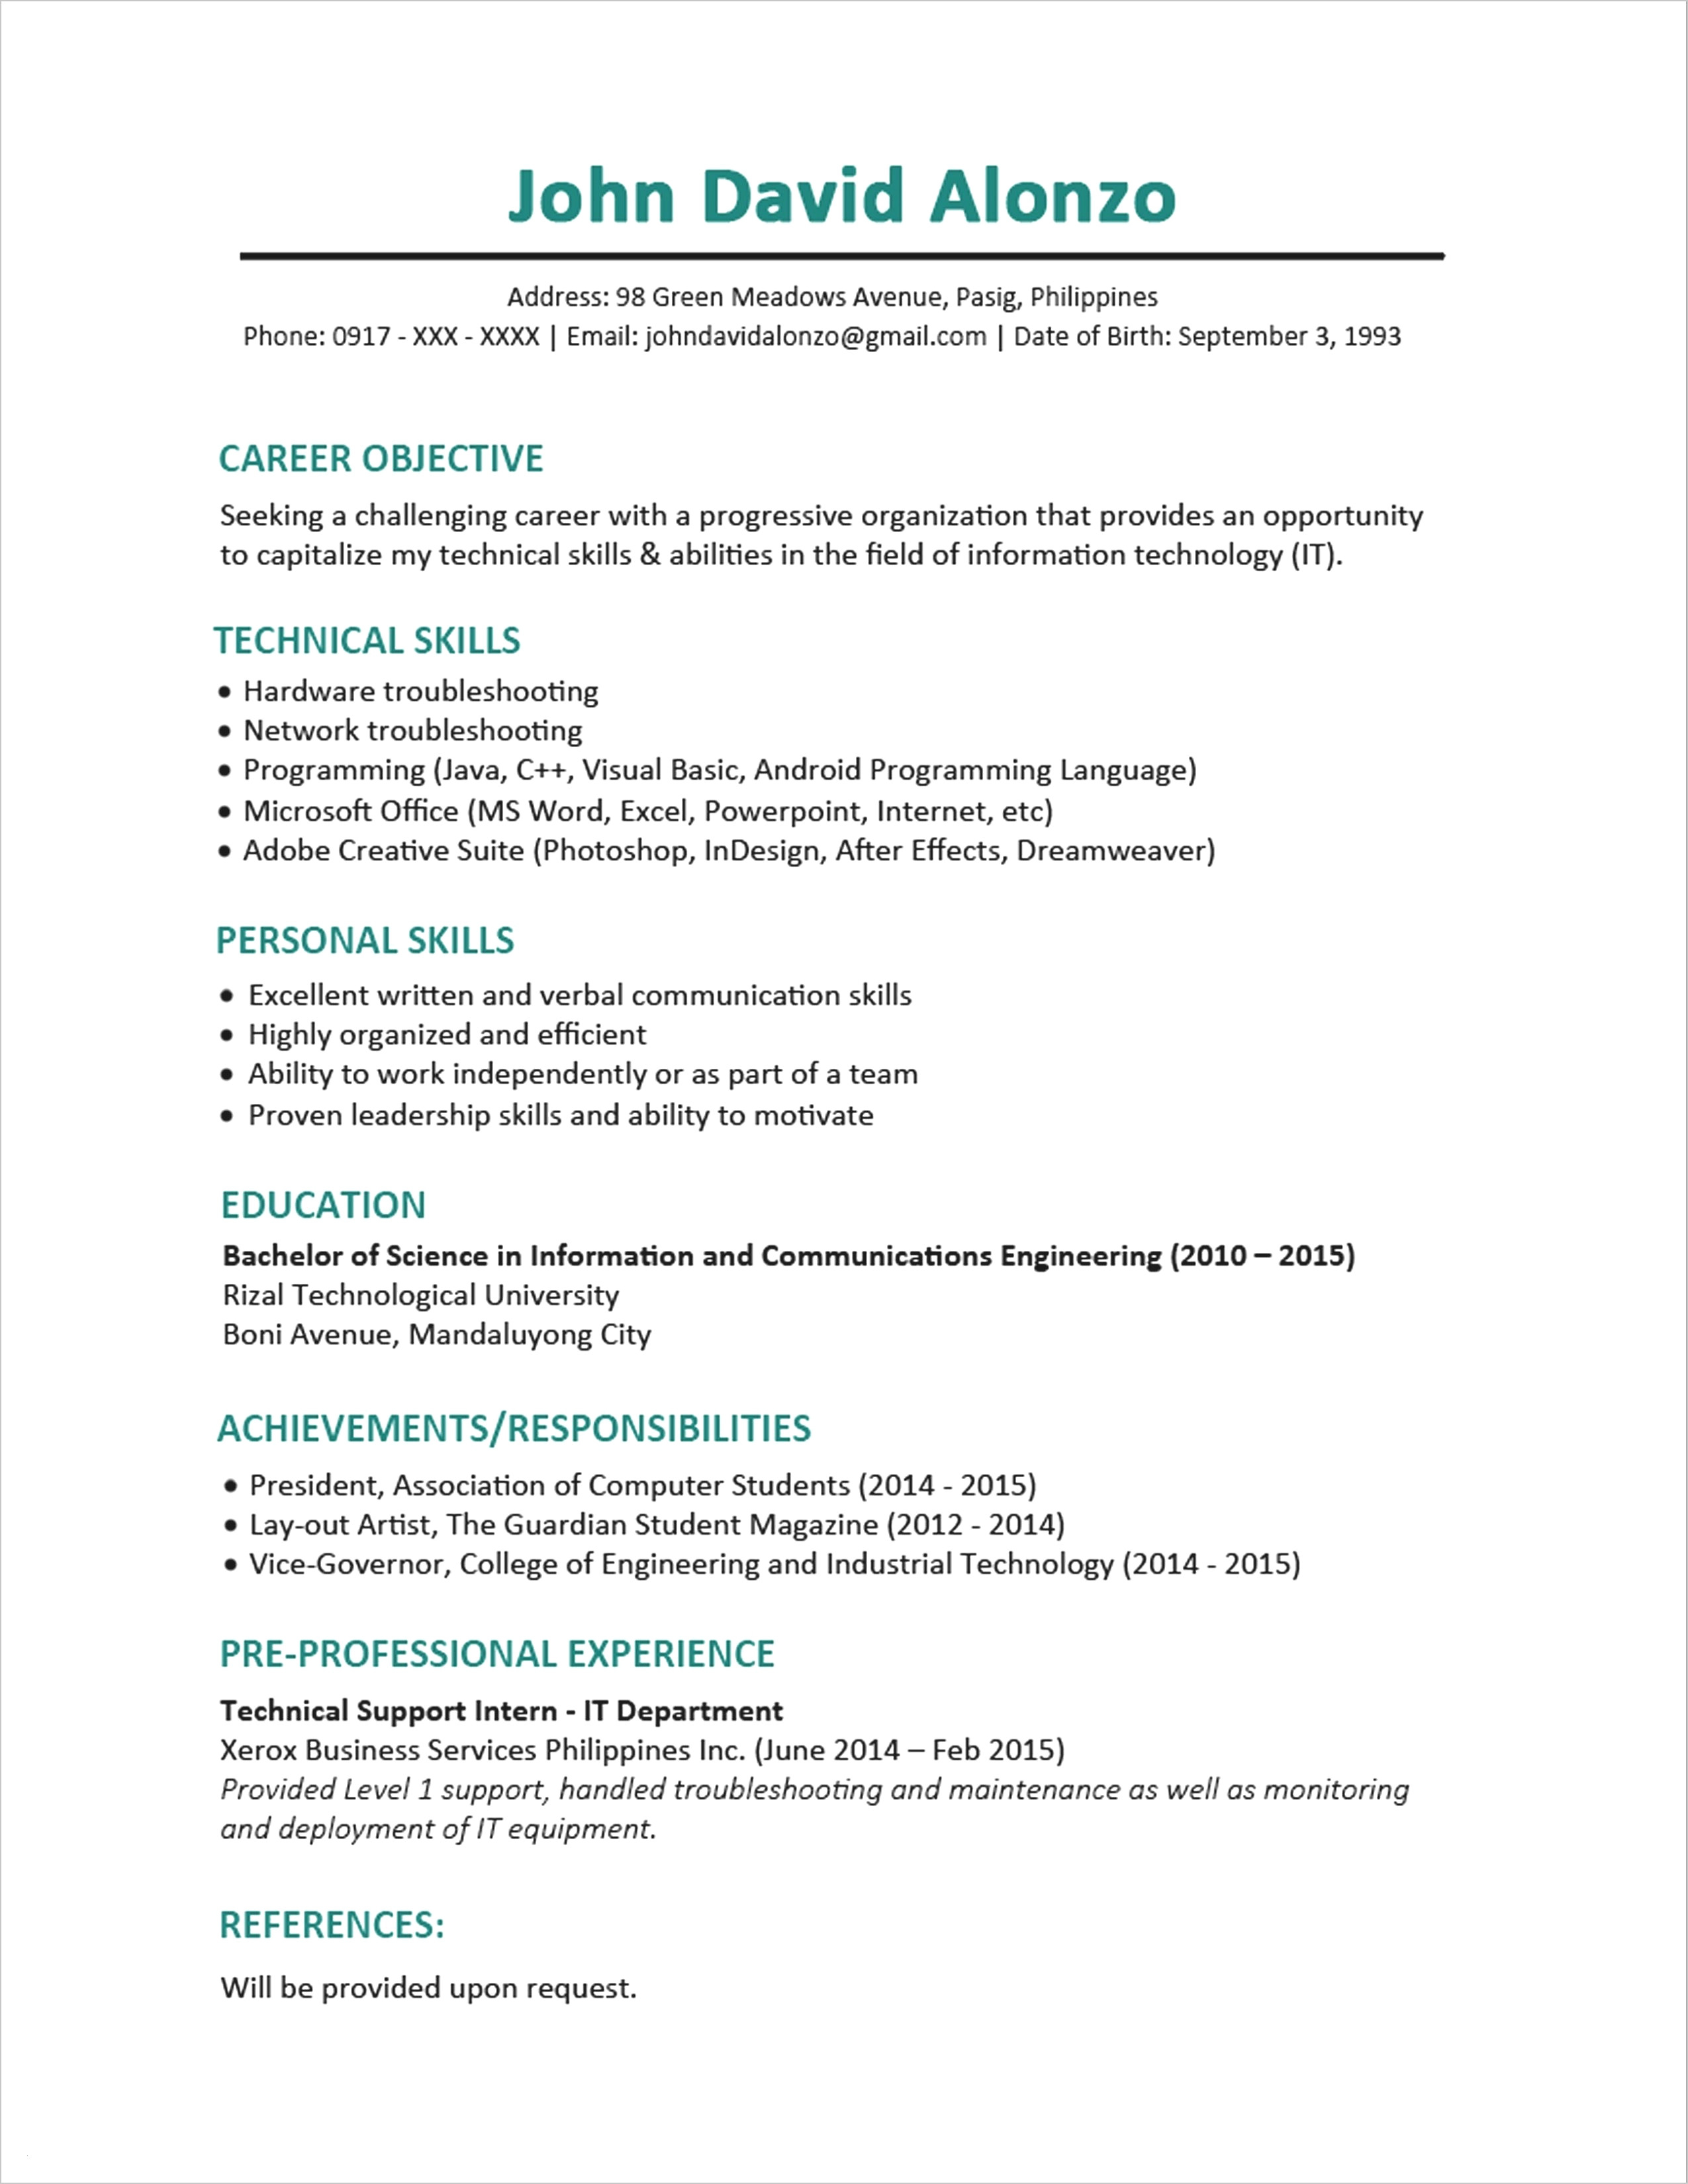 line cook resume template example-Resume for Police ficer Beautiful Resume Tutor Luxury Writing Your Resume Luxury Dishwasher Resume 0d 20-e